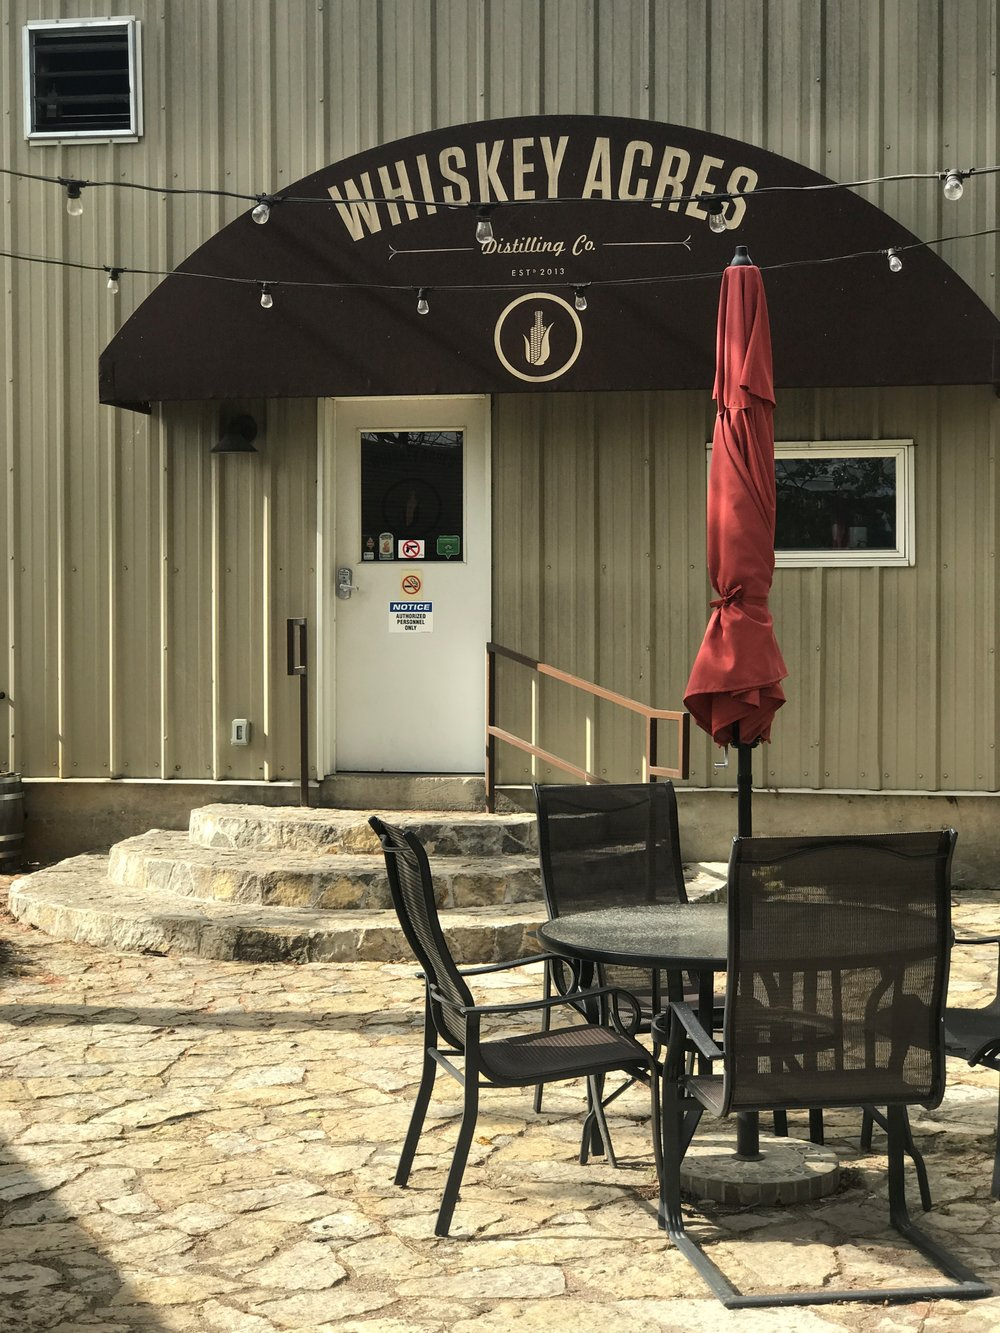 Whiskey_acres-3.jpg